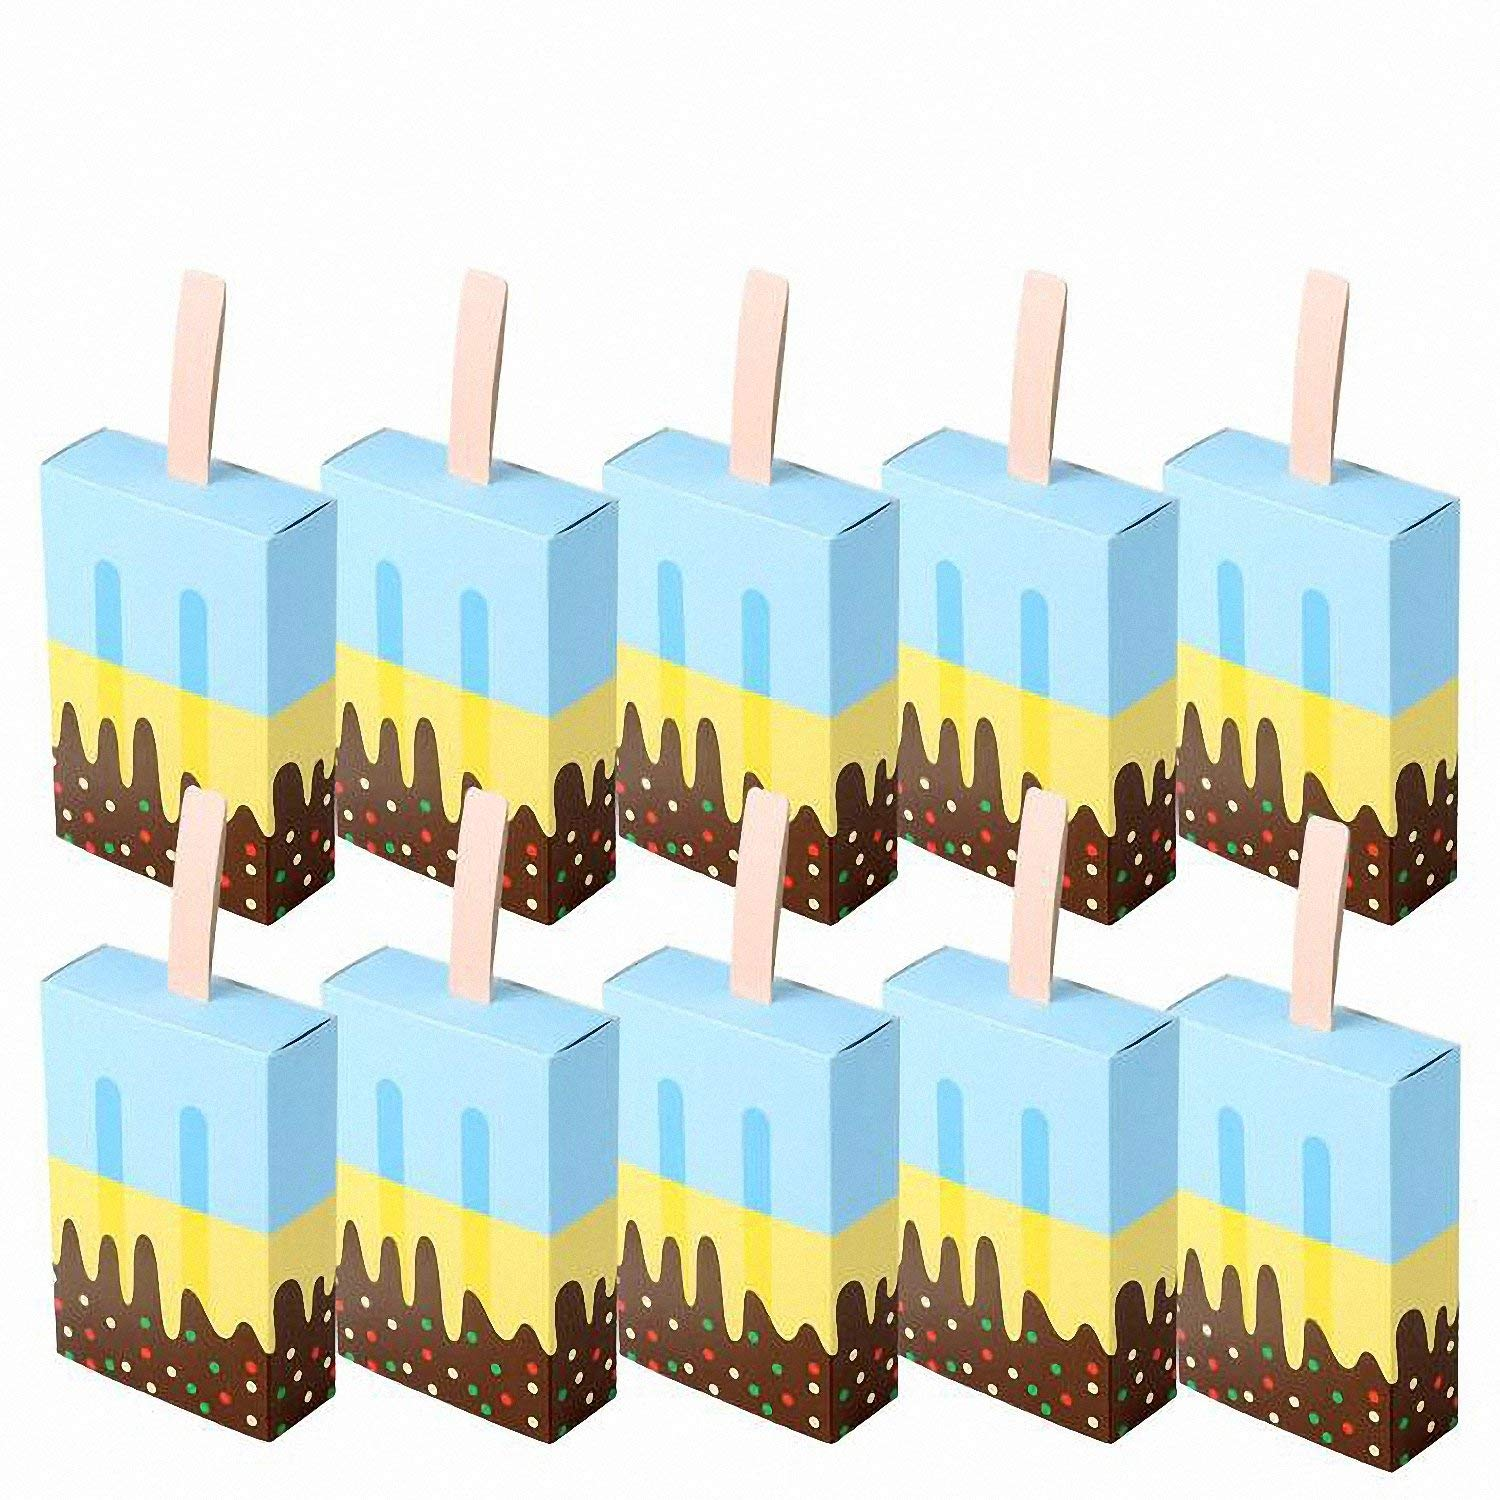 Baolustre 50Pcs Ice Cream Shape Gift Boxes Baby Shower Birthday Party Candy Box Cartoon Drawer Gift Bag For Kids Party Favor Box Blue